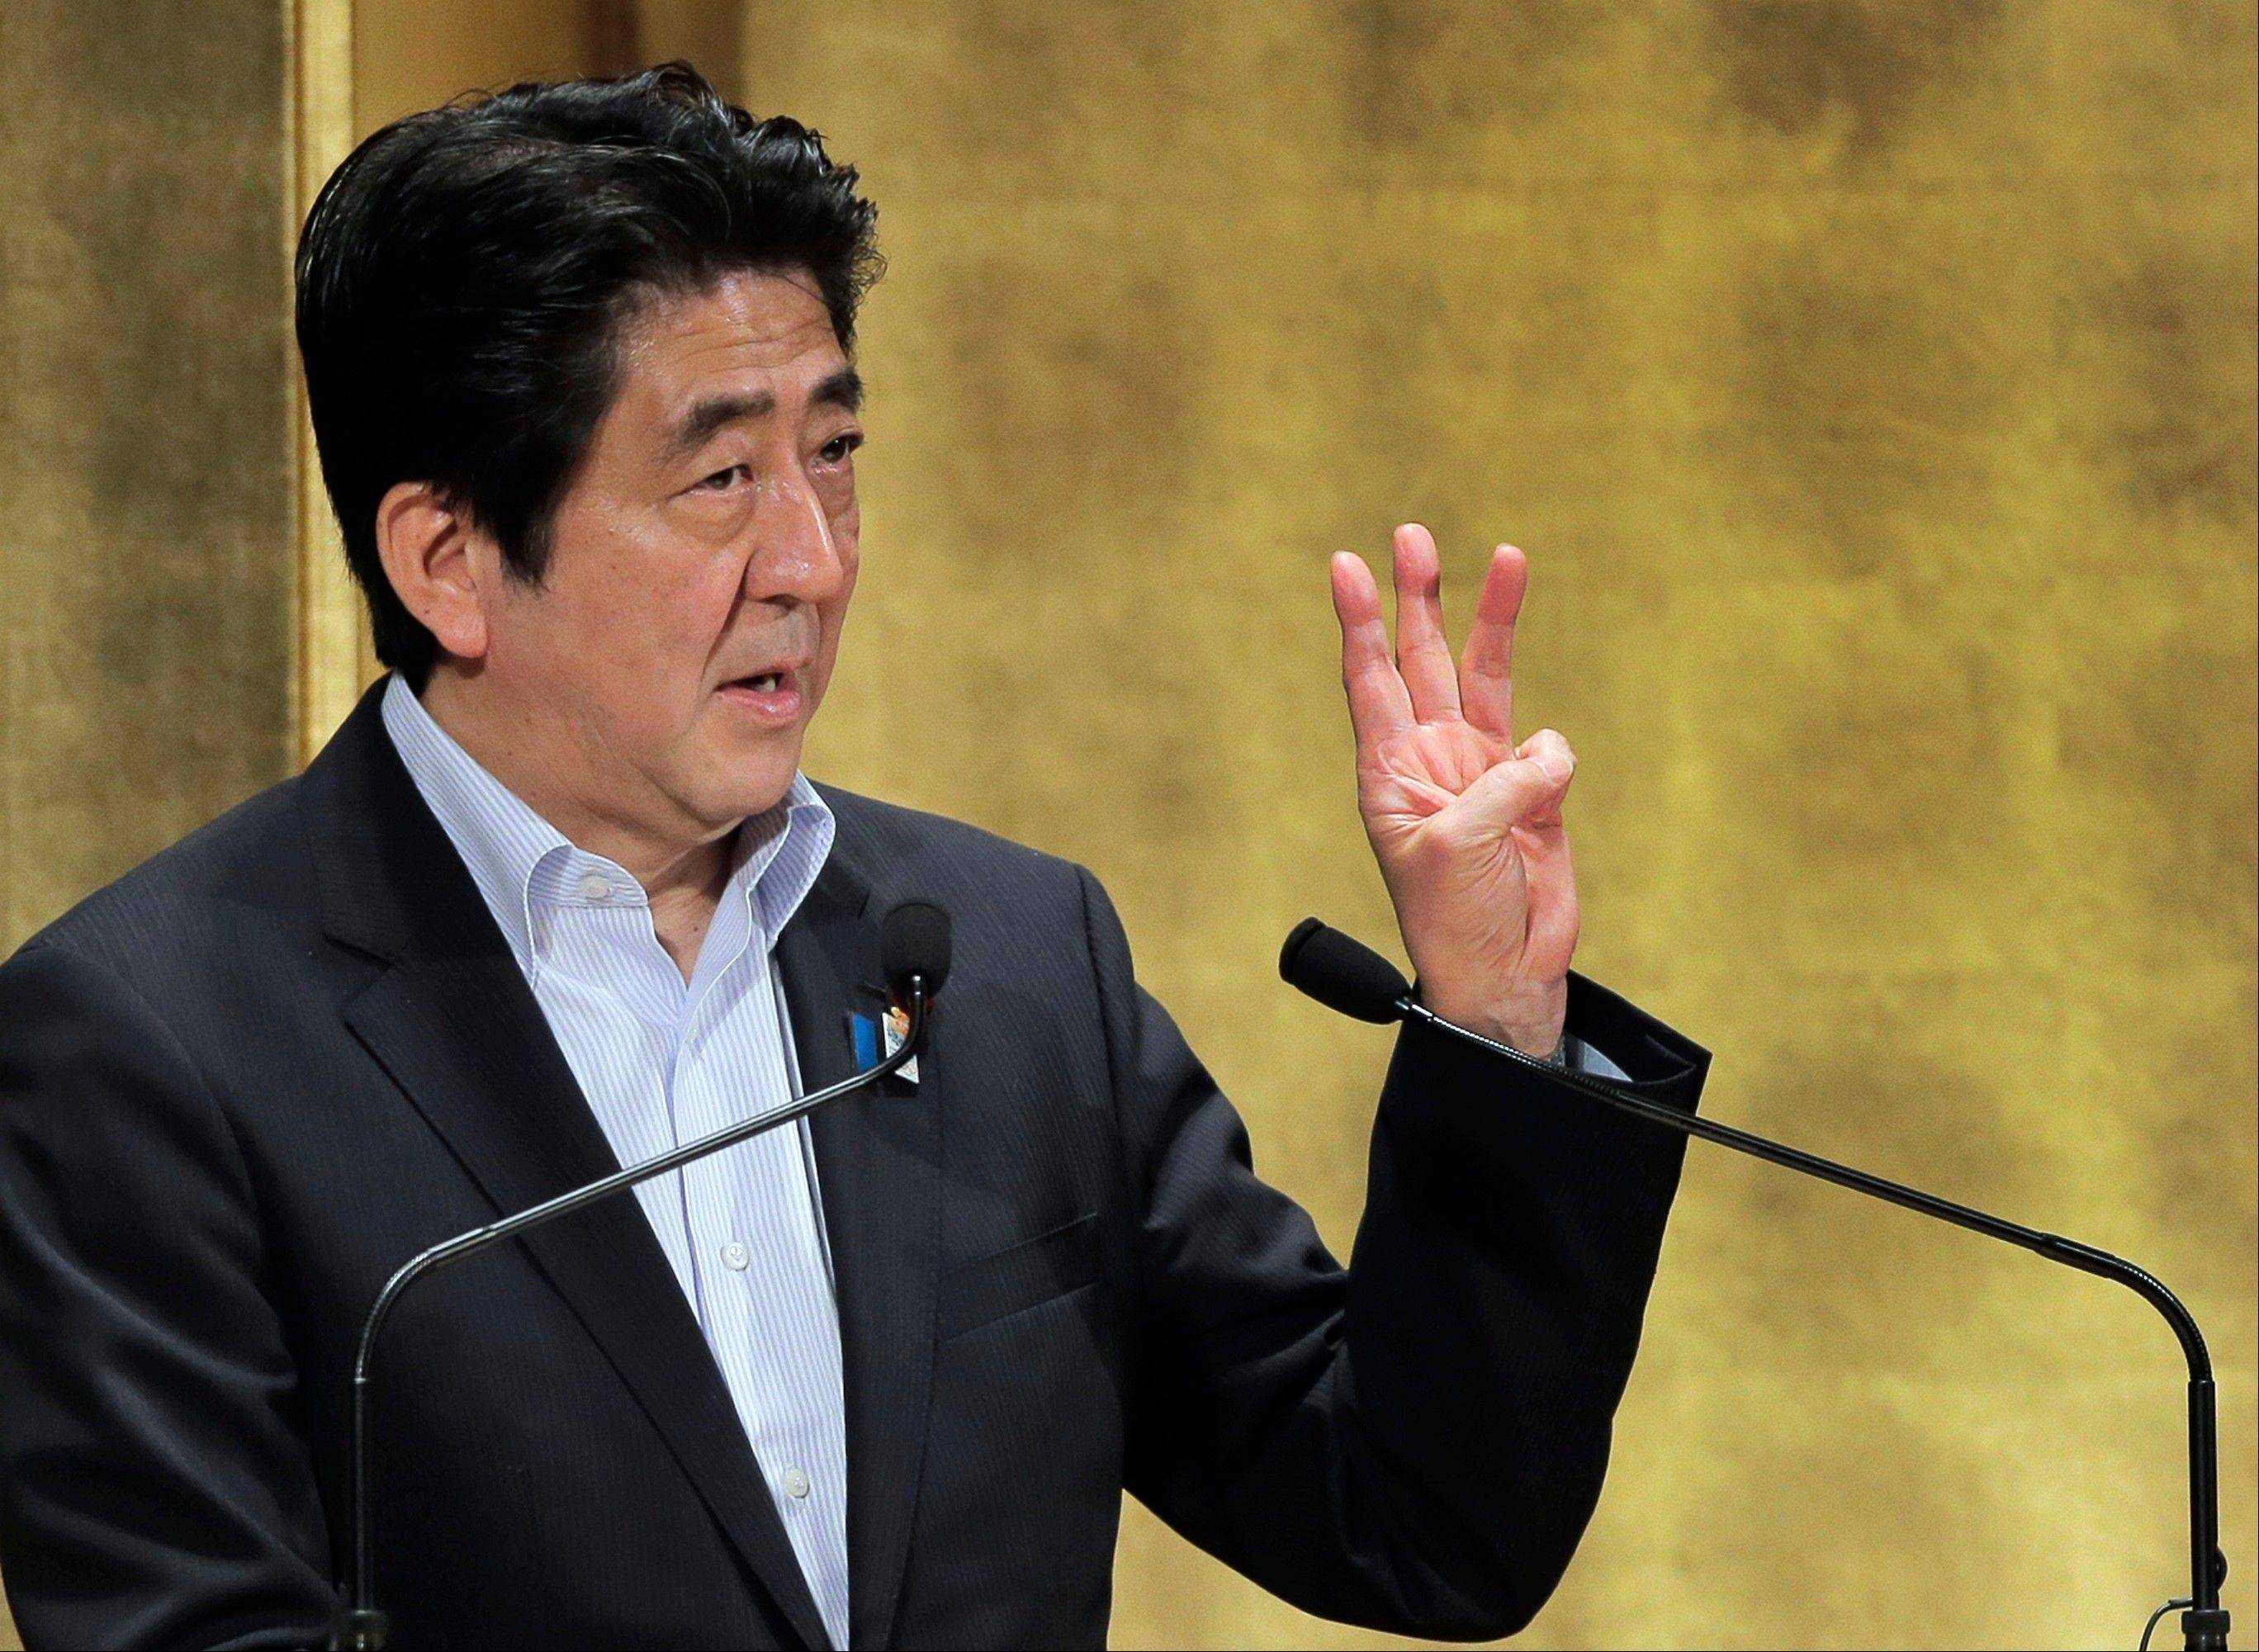 Japanese Prime Minister Shinzo Abe gestures Wednesday during a speech at a seminar in Tokyo. Abe outlined a sweeping blueprint for rejuvenating Japan�s ailing economy with reforms meant to bring more women into the workforce, promote industrial innovation and coax cash-hoarding corporations into investing more.